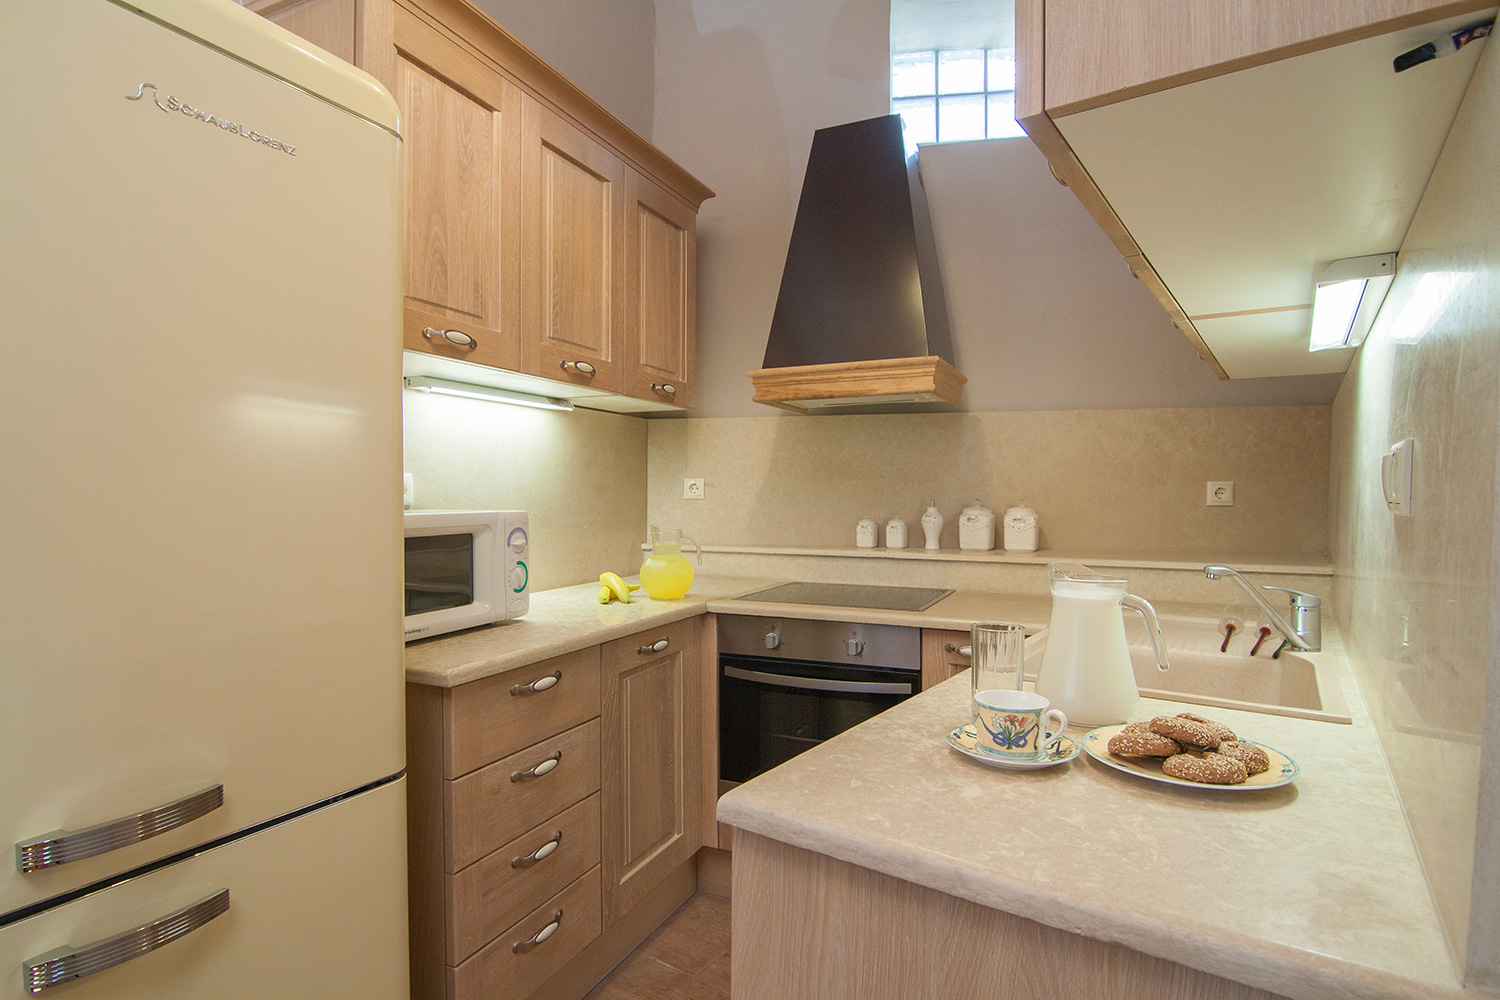 Indoor - Fully equipped kitchen with branded electric devices